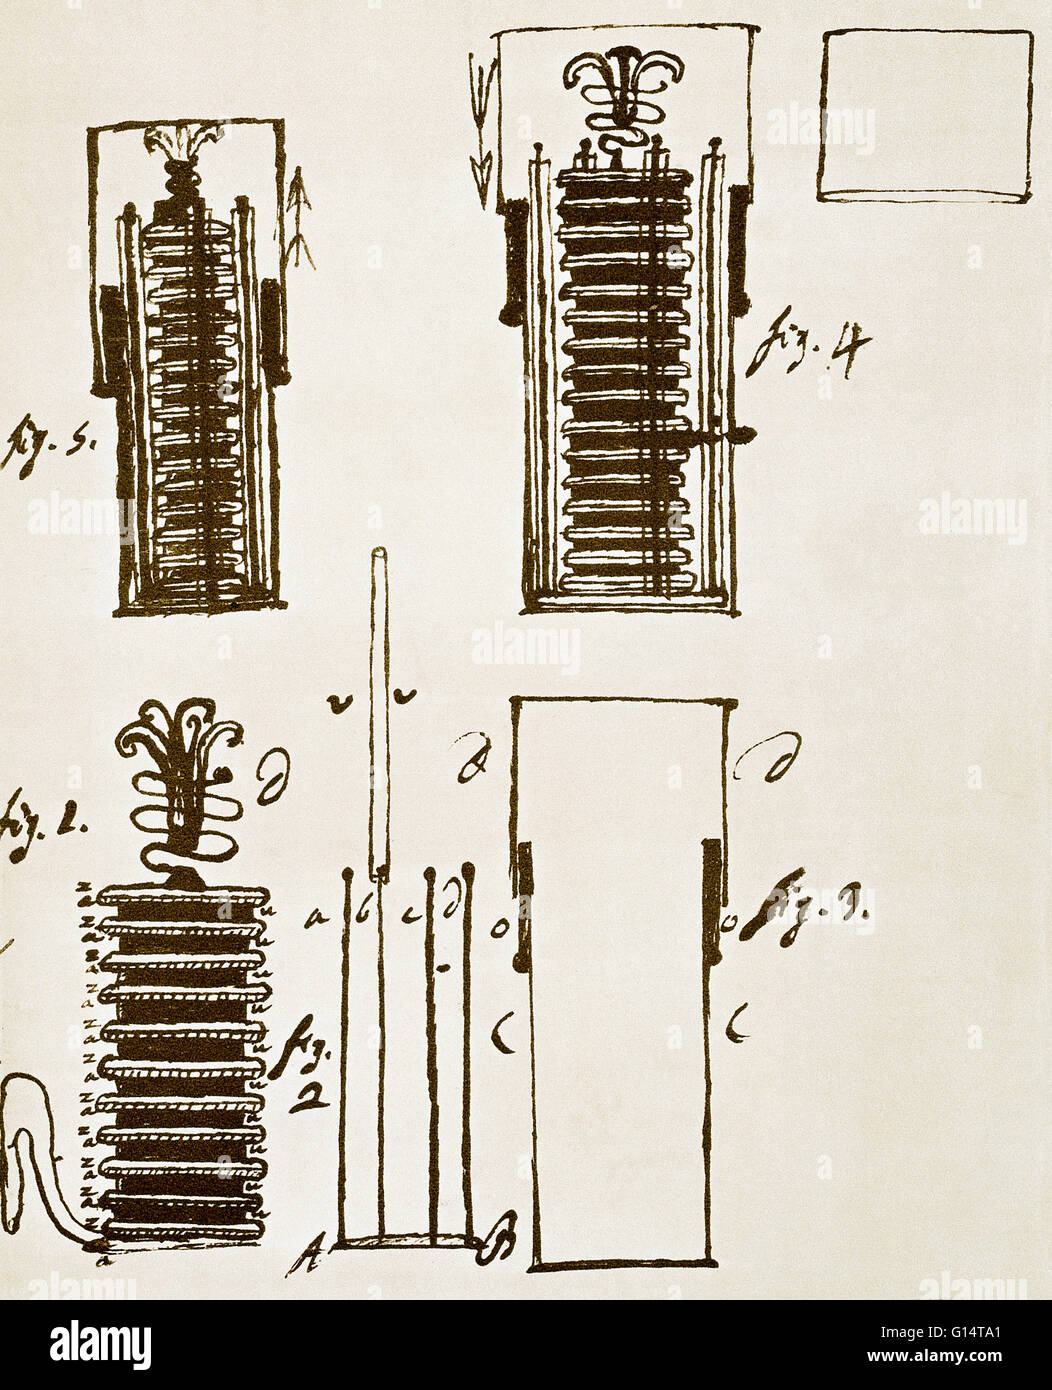 A drawing made by inventor Alessandro Volta (1745 - 1827), of the ...